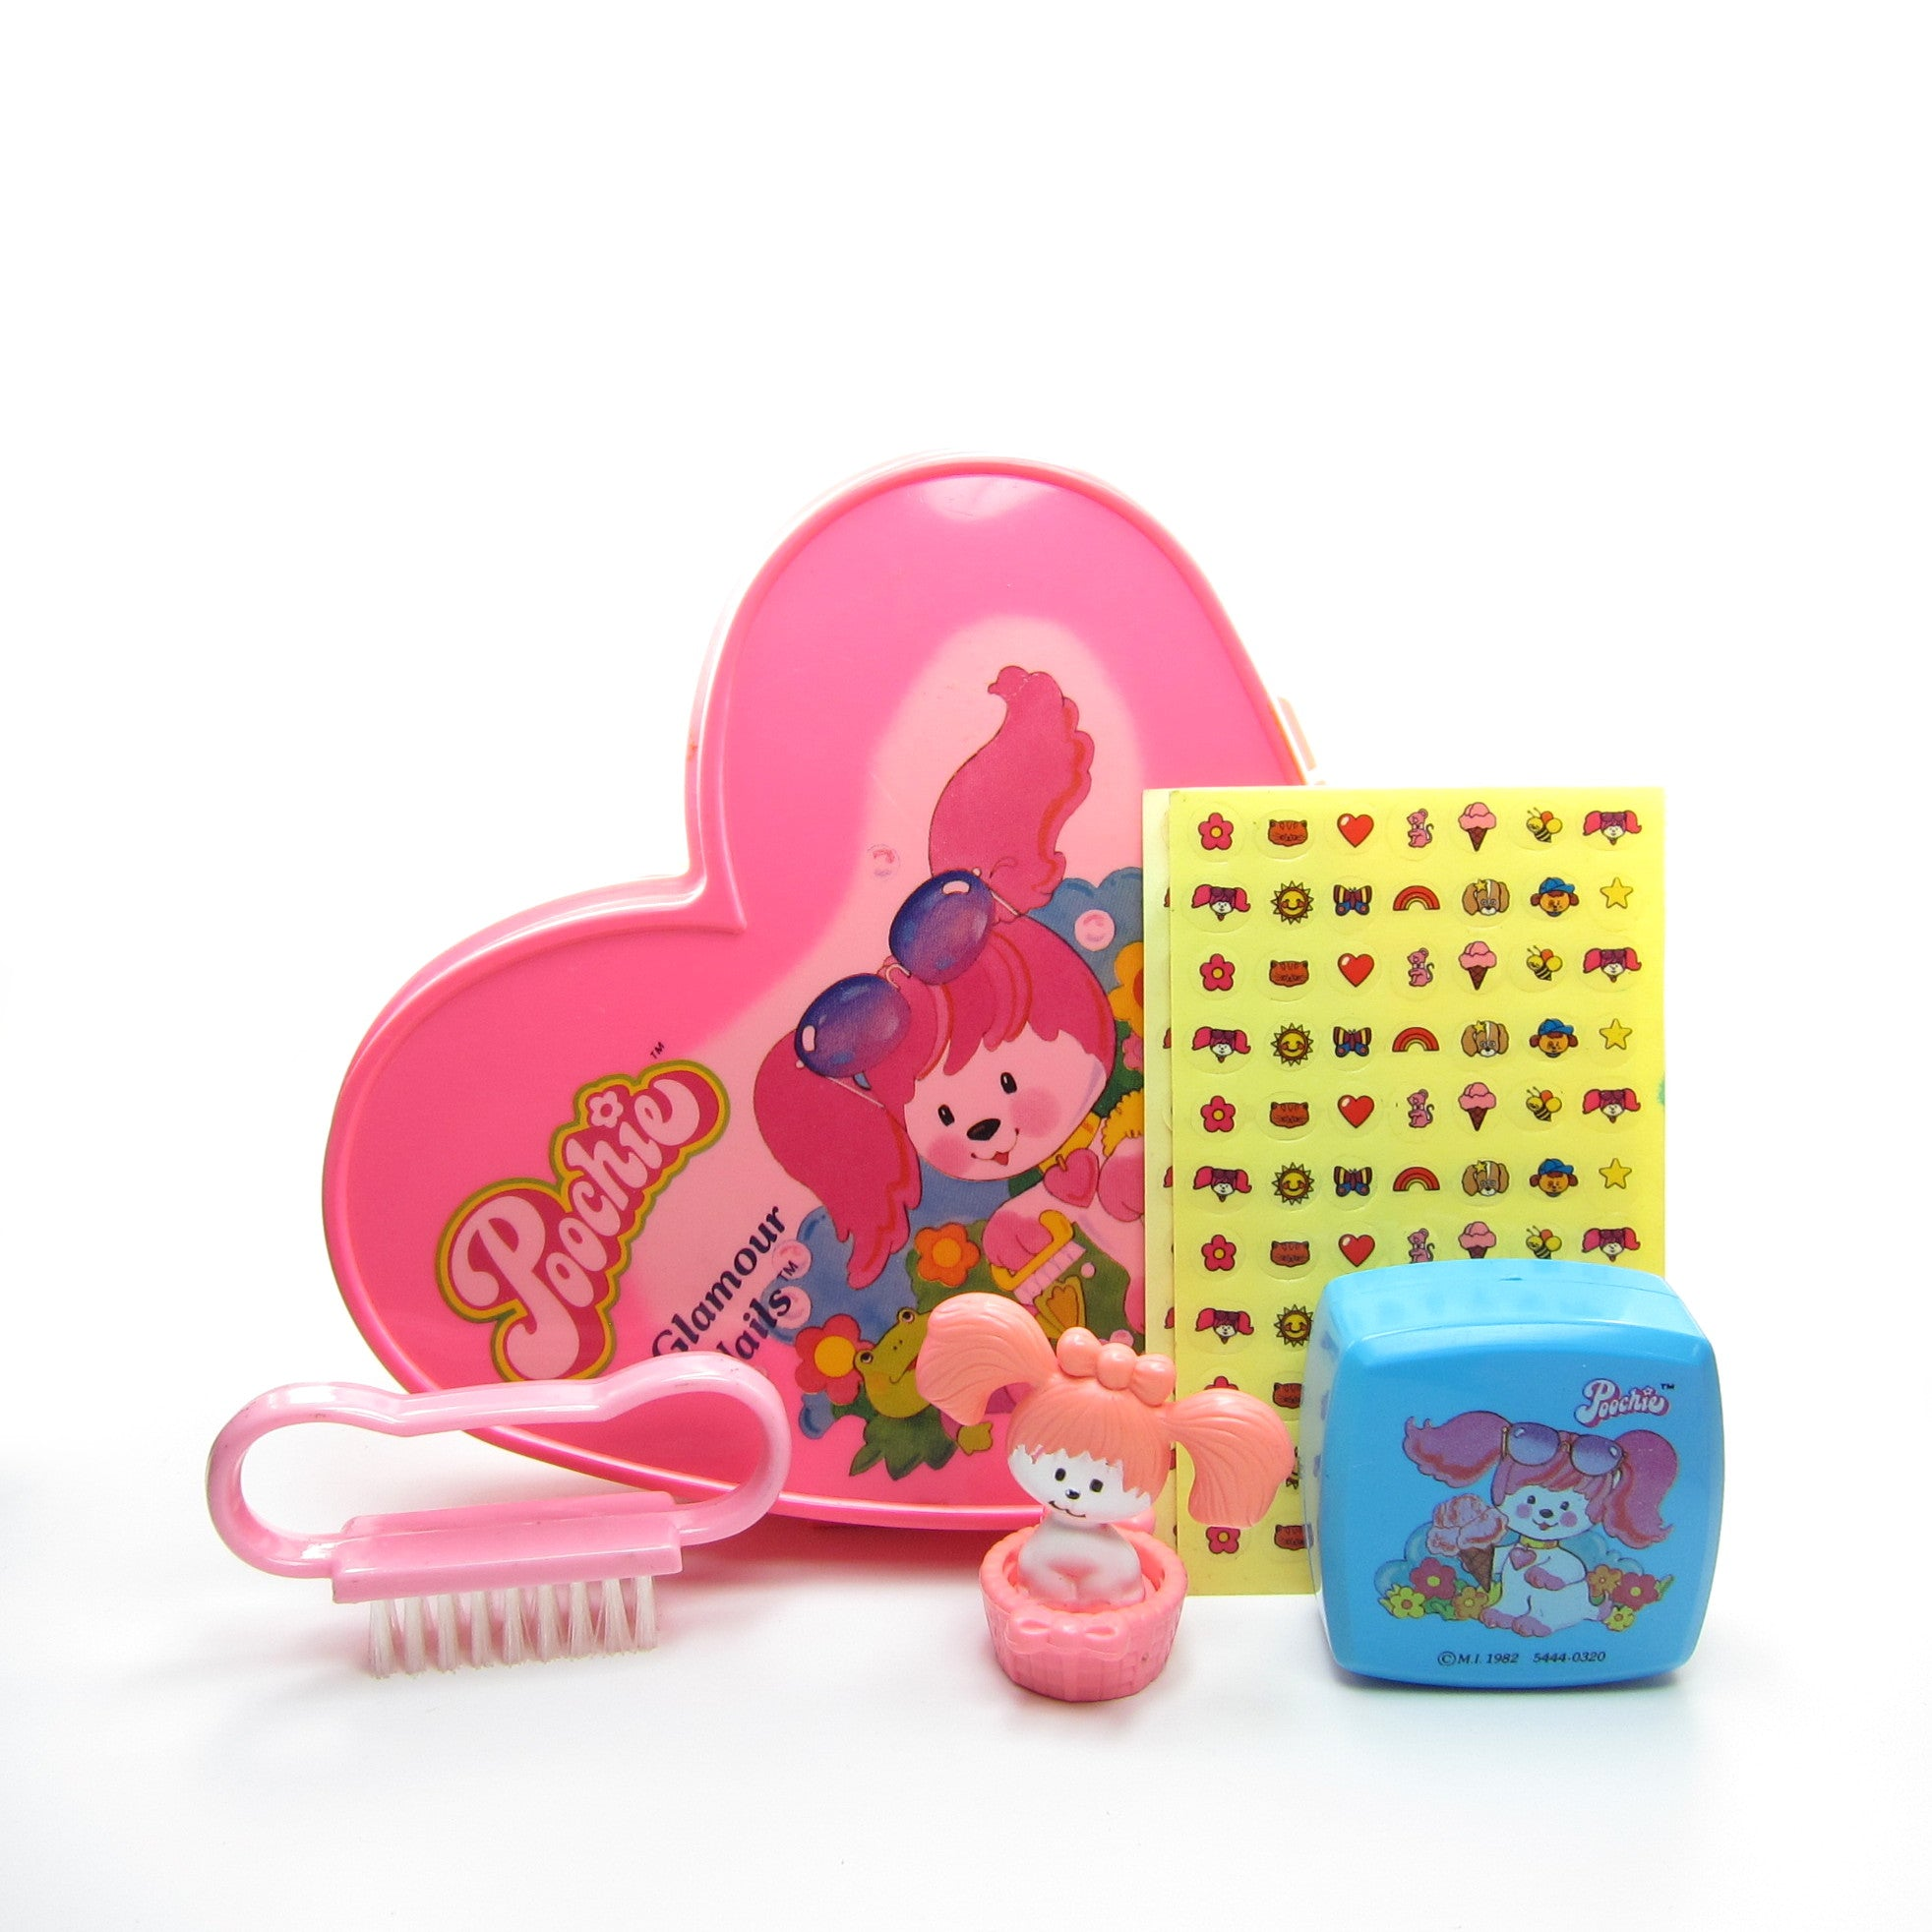 Poochie Glamour Nails manicure set with ink stamp, trinket box, nail decals